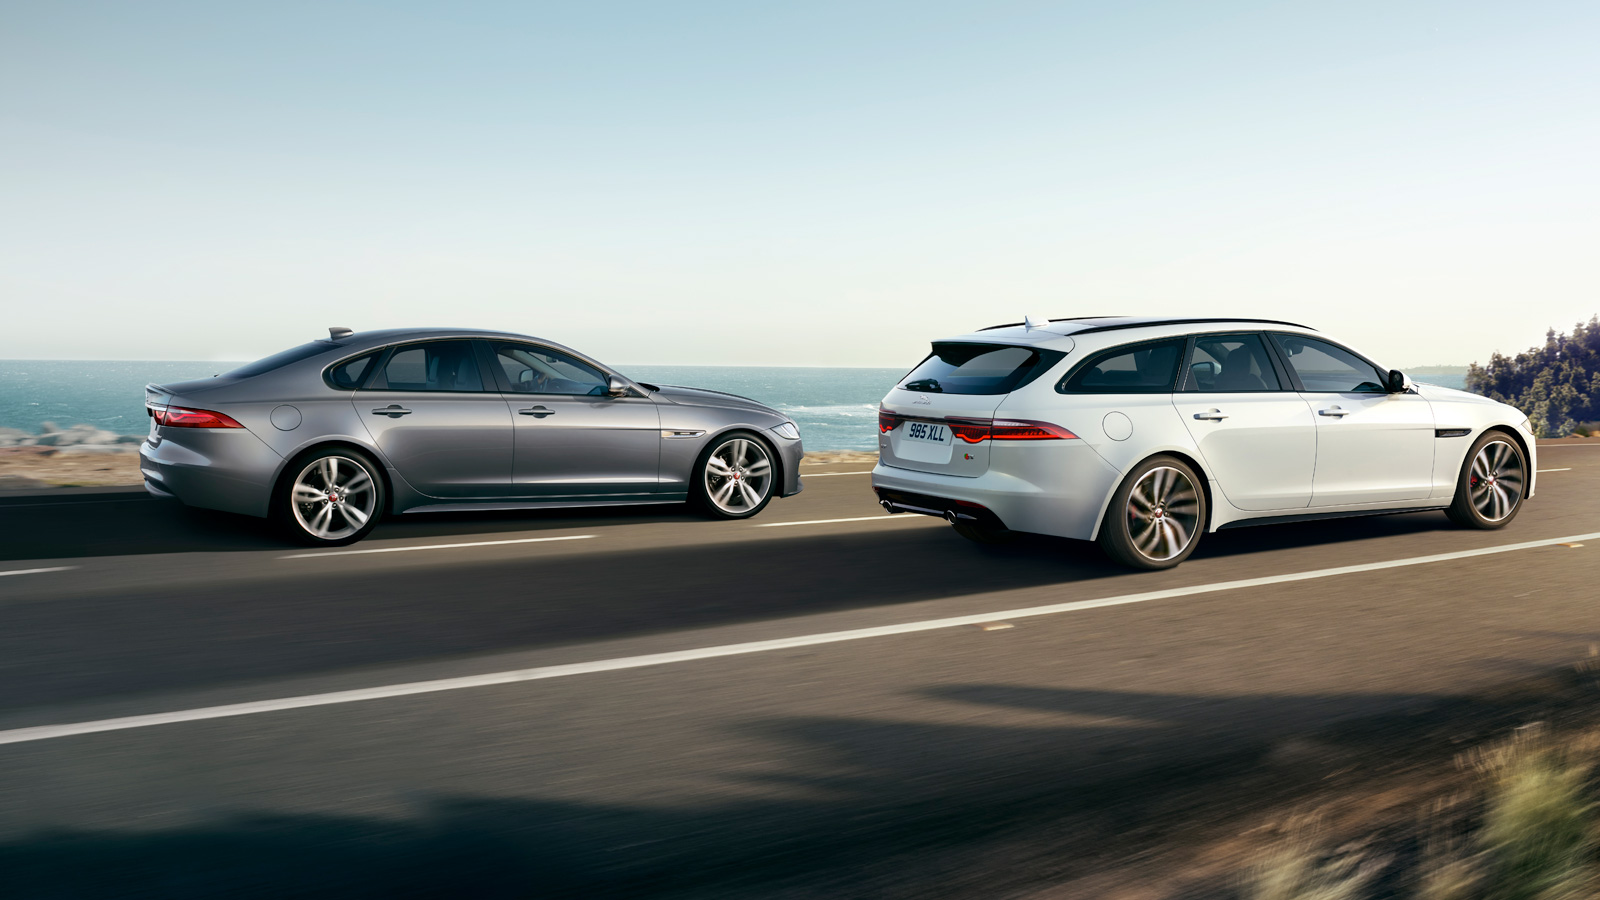 Jaguar XF SPORTBRAKE 2.0d (180) Chequered Flag AWD SPECIAL EDITIONS Diesel Automatic 5 door Estate (19MY) image